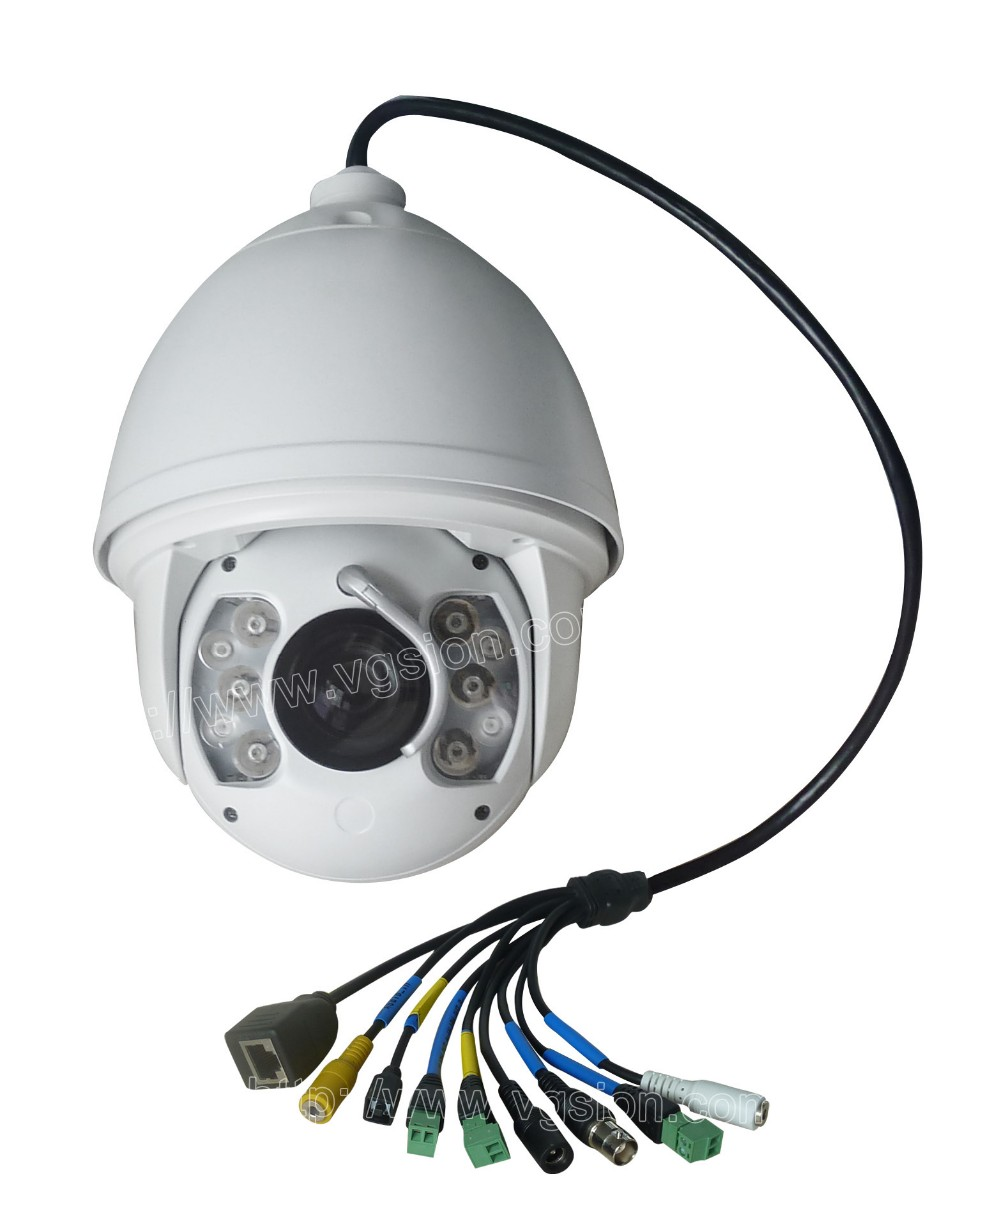 Ambarella A5 CPU Onvif SONY CMOS Protocol IR 150M 1080P WDR 20X Zoom High Speed PanTilt Dome PTZ Camera